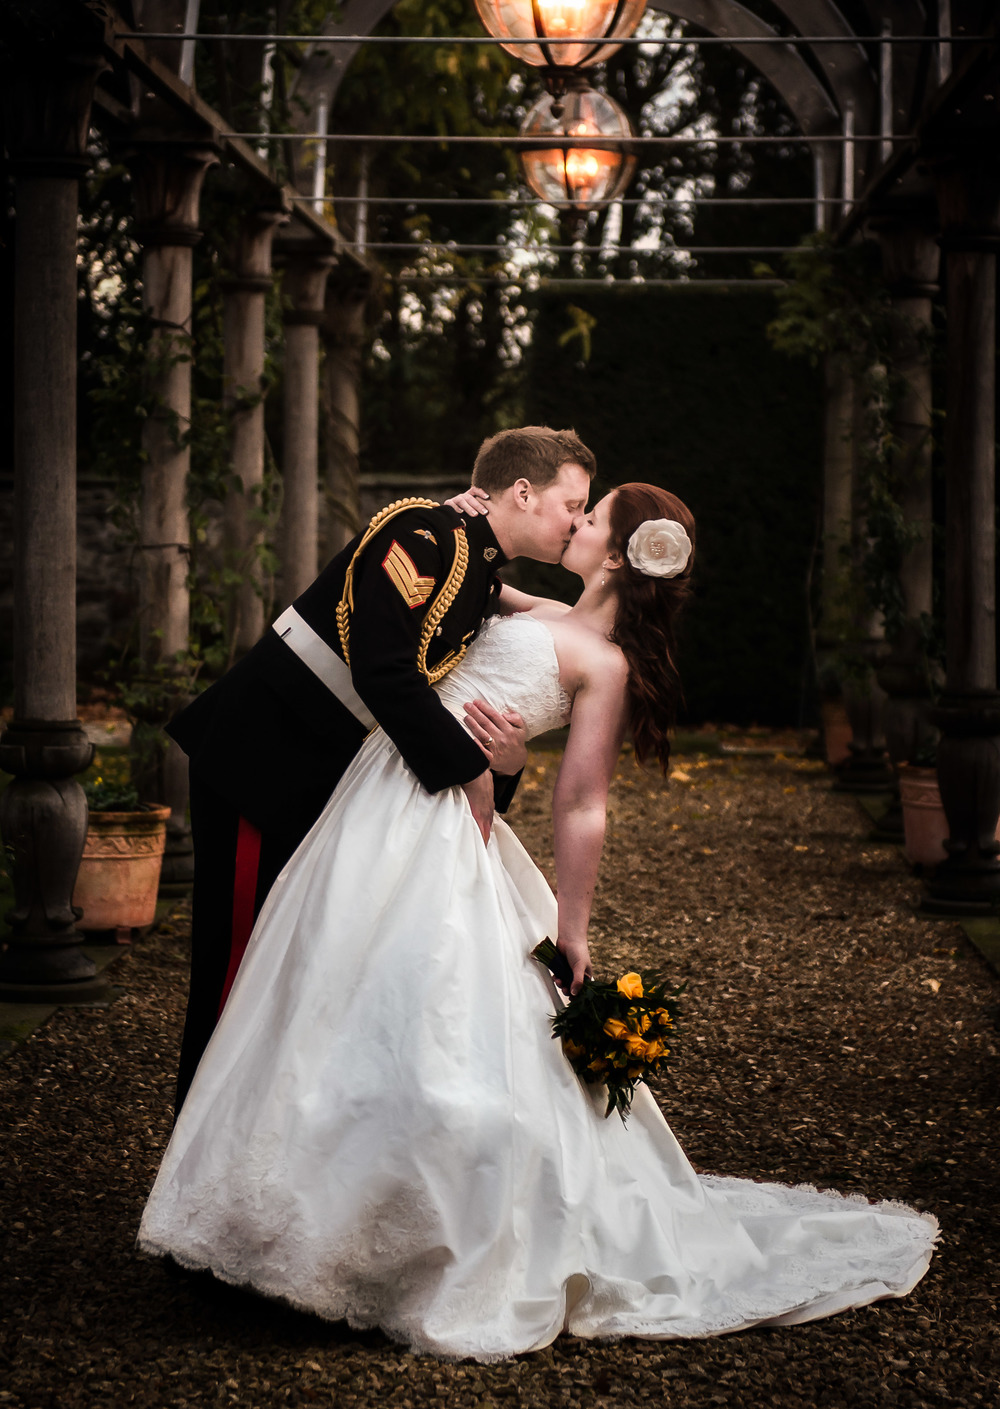 We took a brief stroll in the Gardens at Hassop Hall to capture this shot of Anthony and Adele.